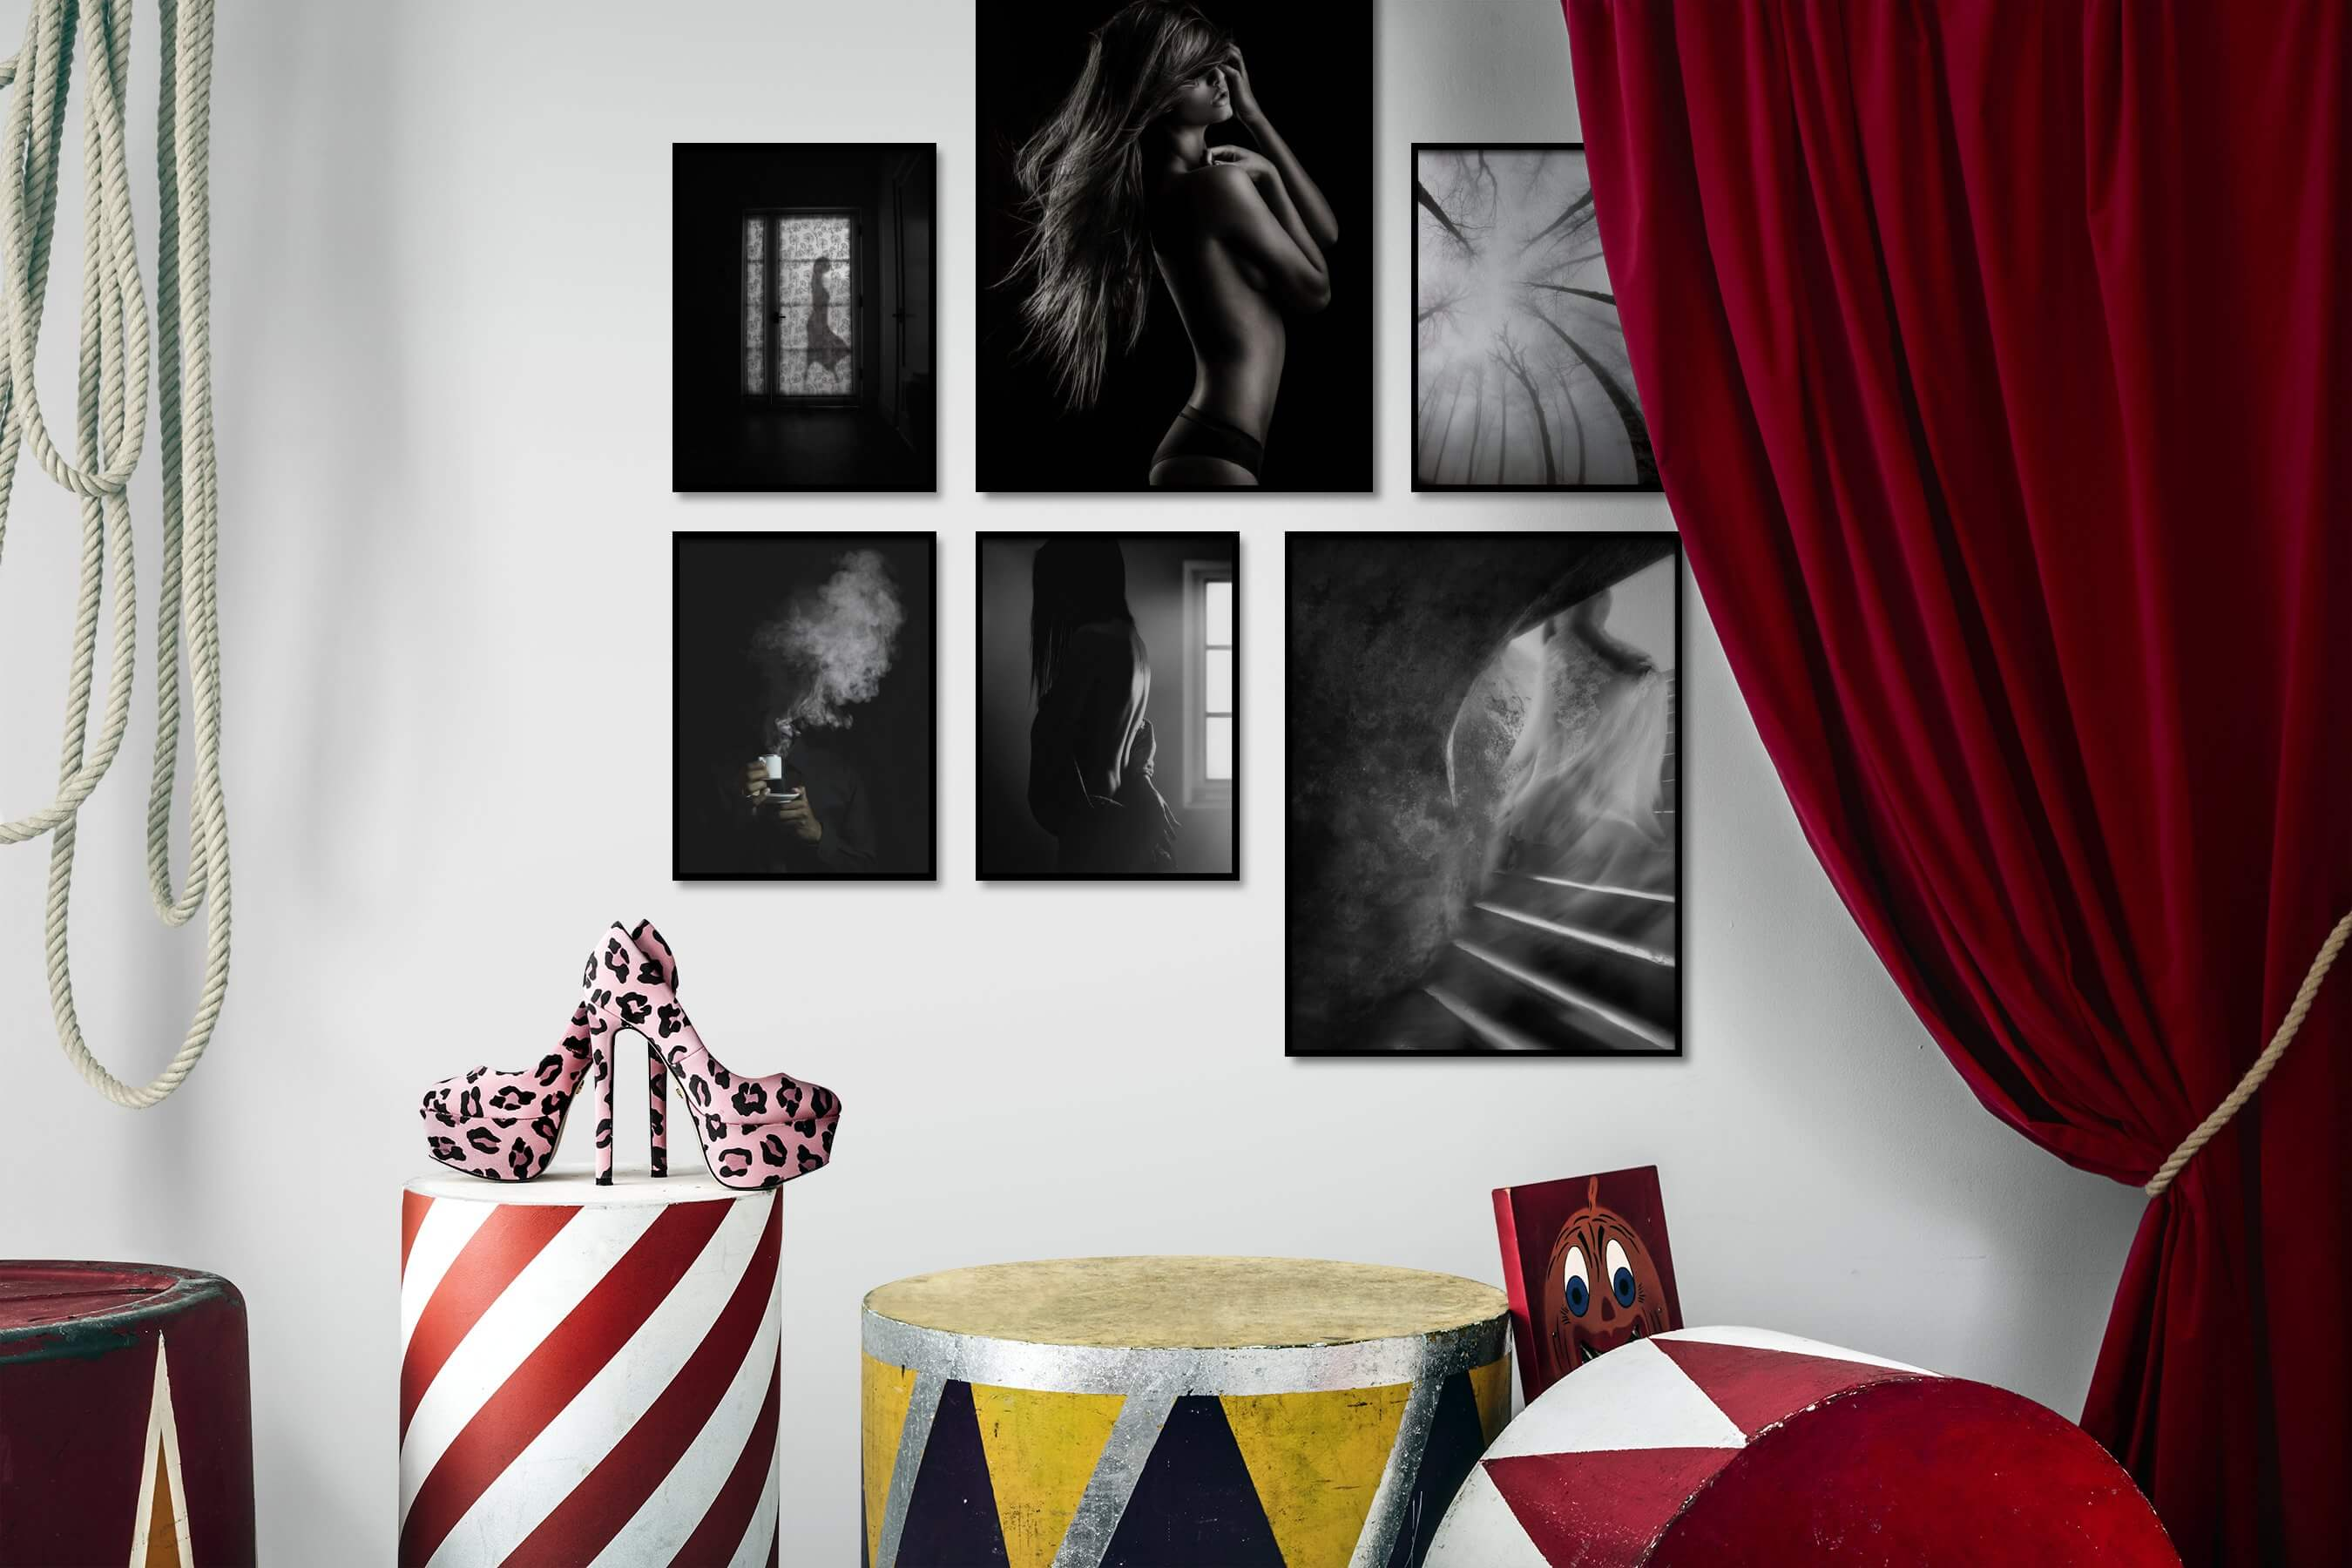 Gallery wall idea with six framed pictures arranged on a wall depicting Fashion & Beauty, Black & White, Dark Tones, For the Minimalist, Artsy, For the Moderate, and Nature